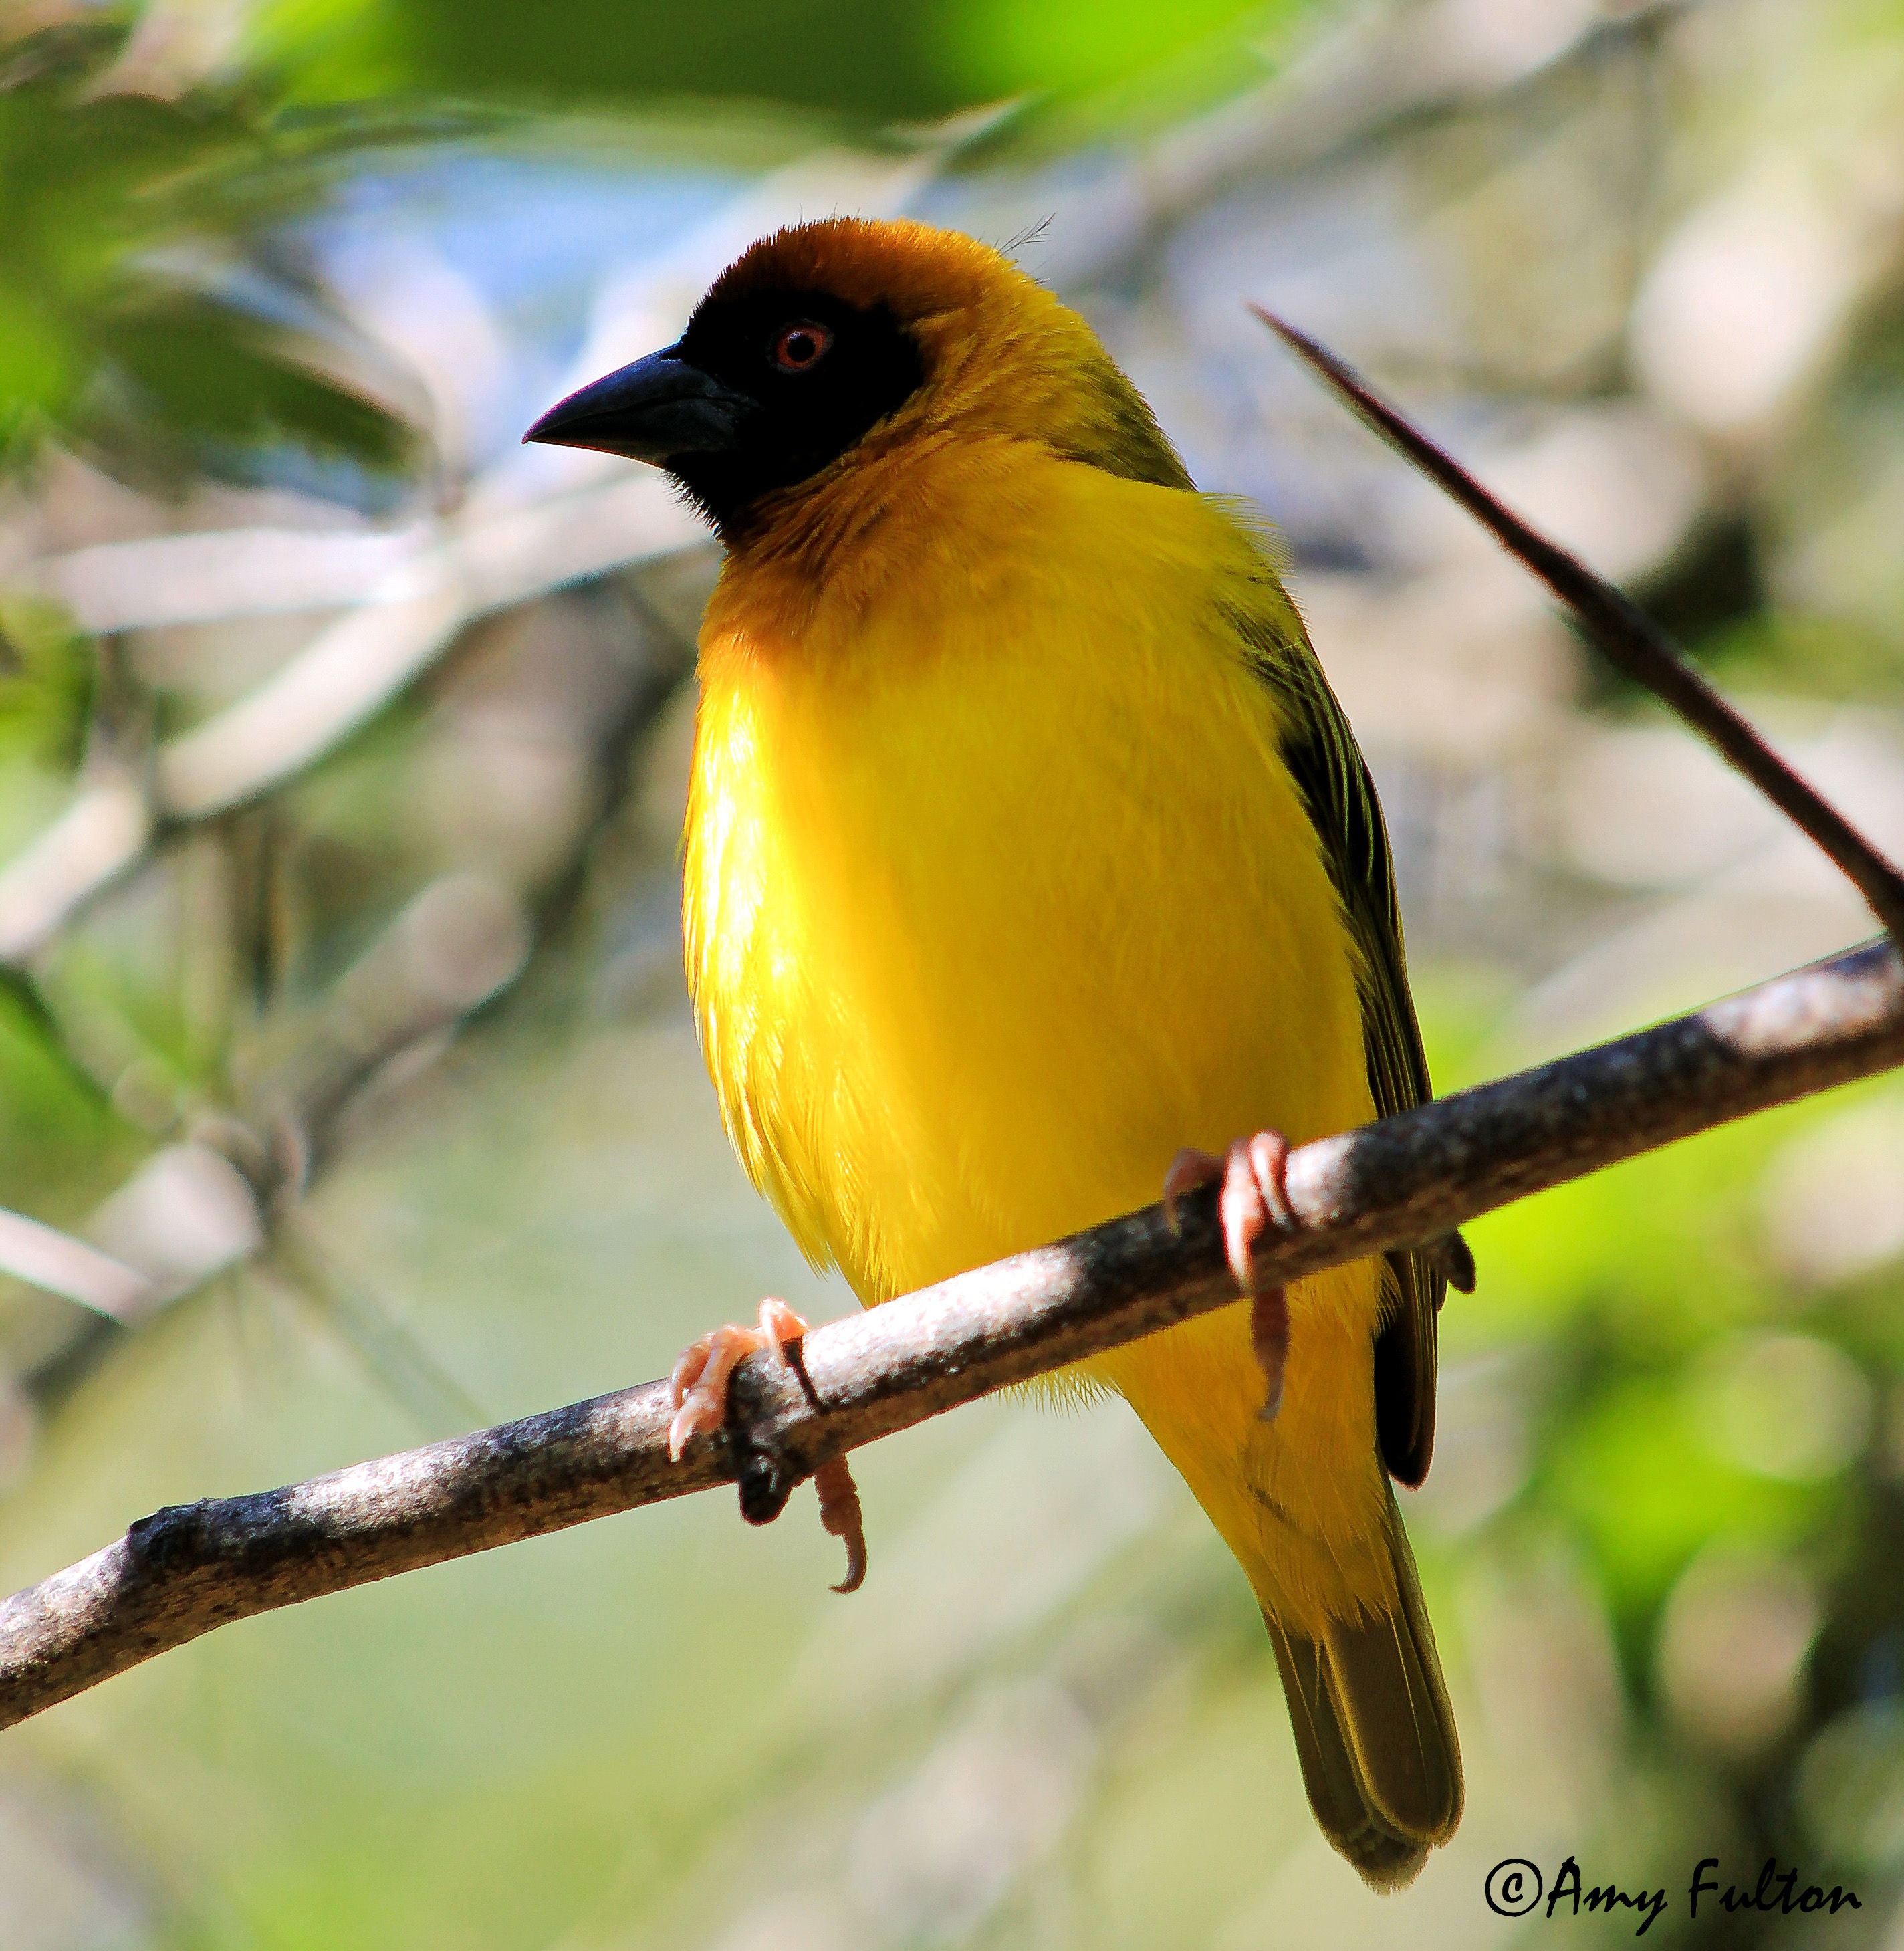 Black Headed Weaver from Africa